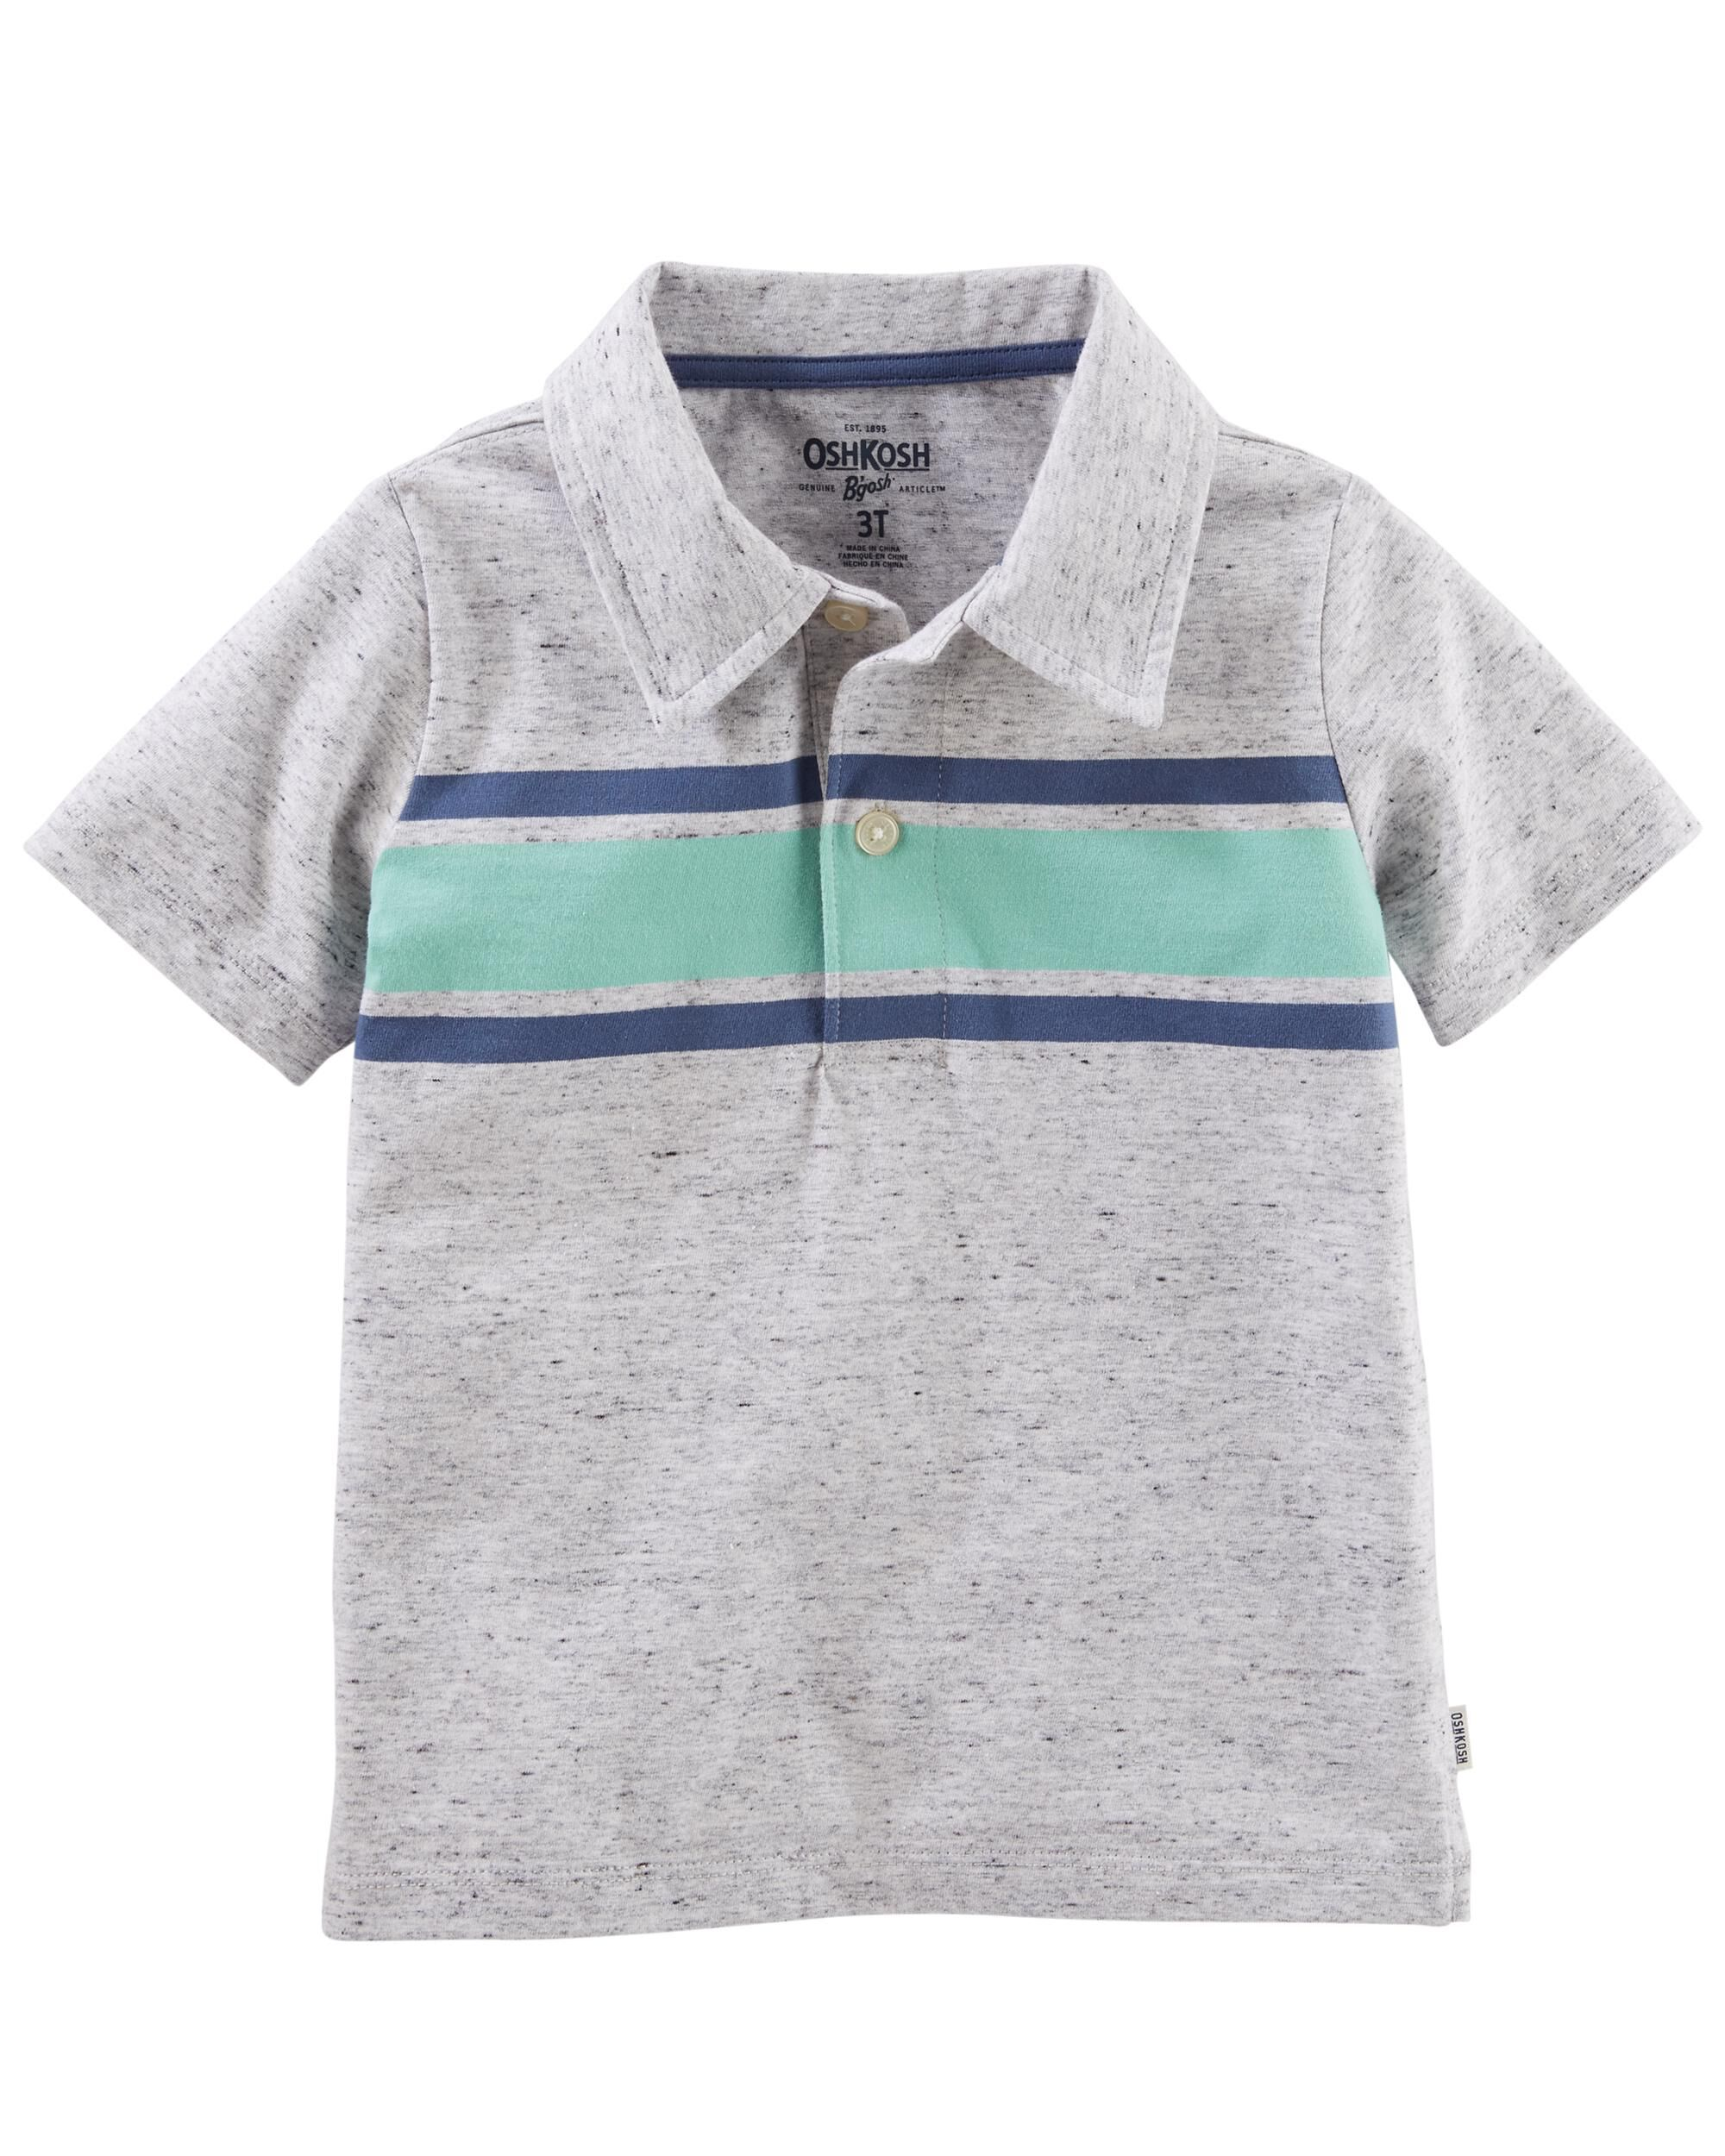 OshKosh BGosh Boys Toddler Striped Jersey Polo